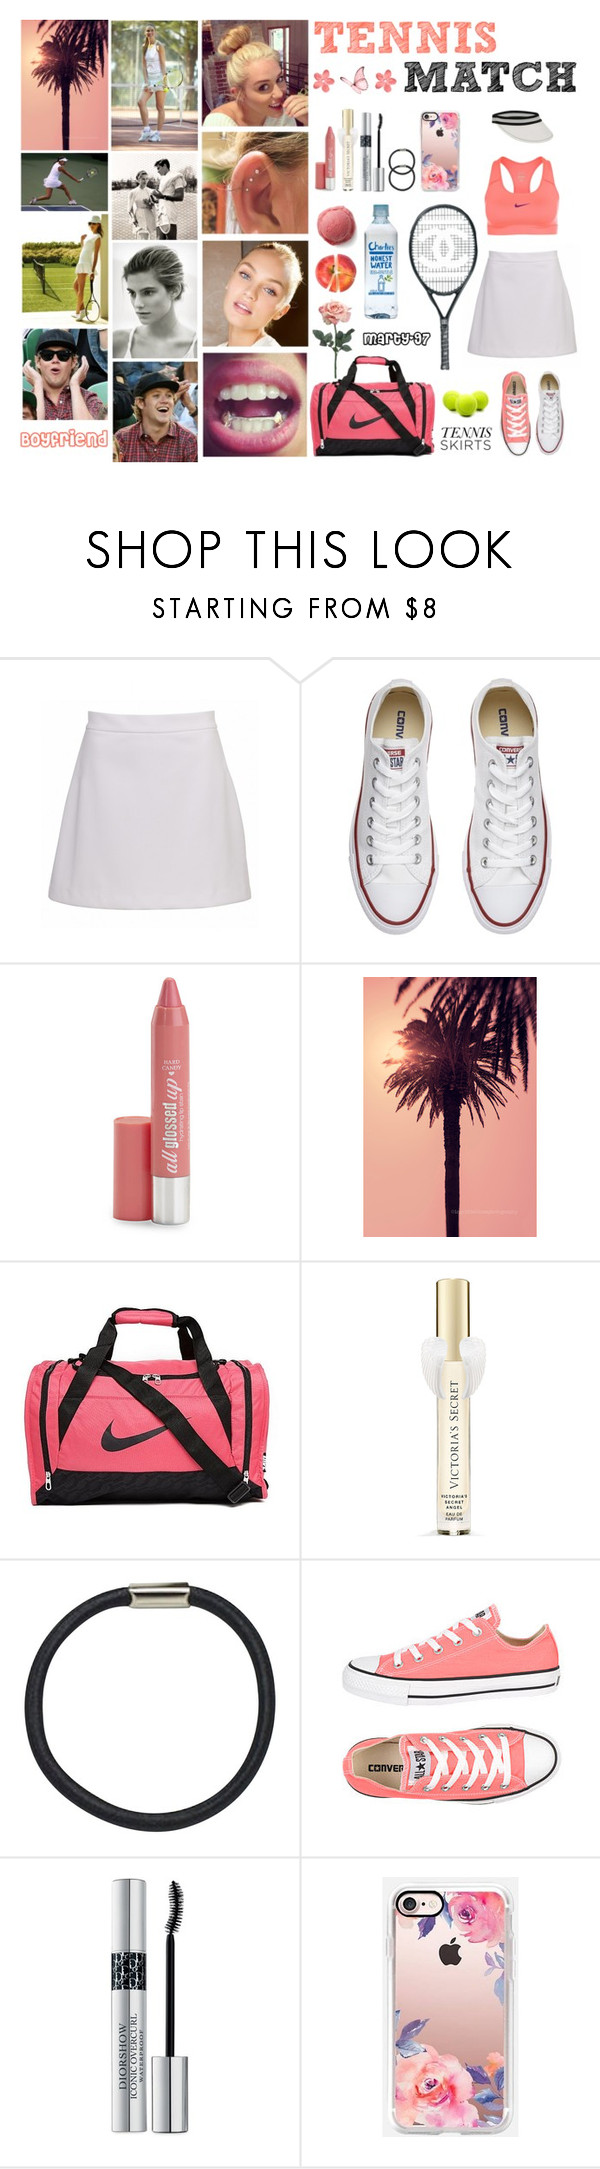 Tennis Match! by marty-97 on Polyvore featuring moda, NIKE, Converse, Casetify, Hershesons, Christian Dior, Hard Candy, Victoria's Secret, WALL and Chanel